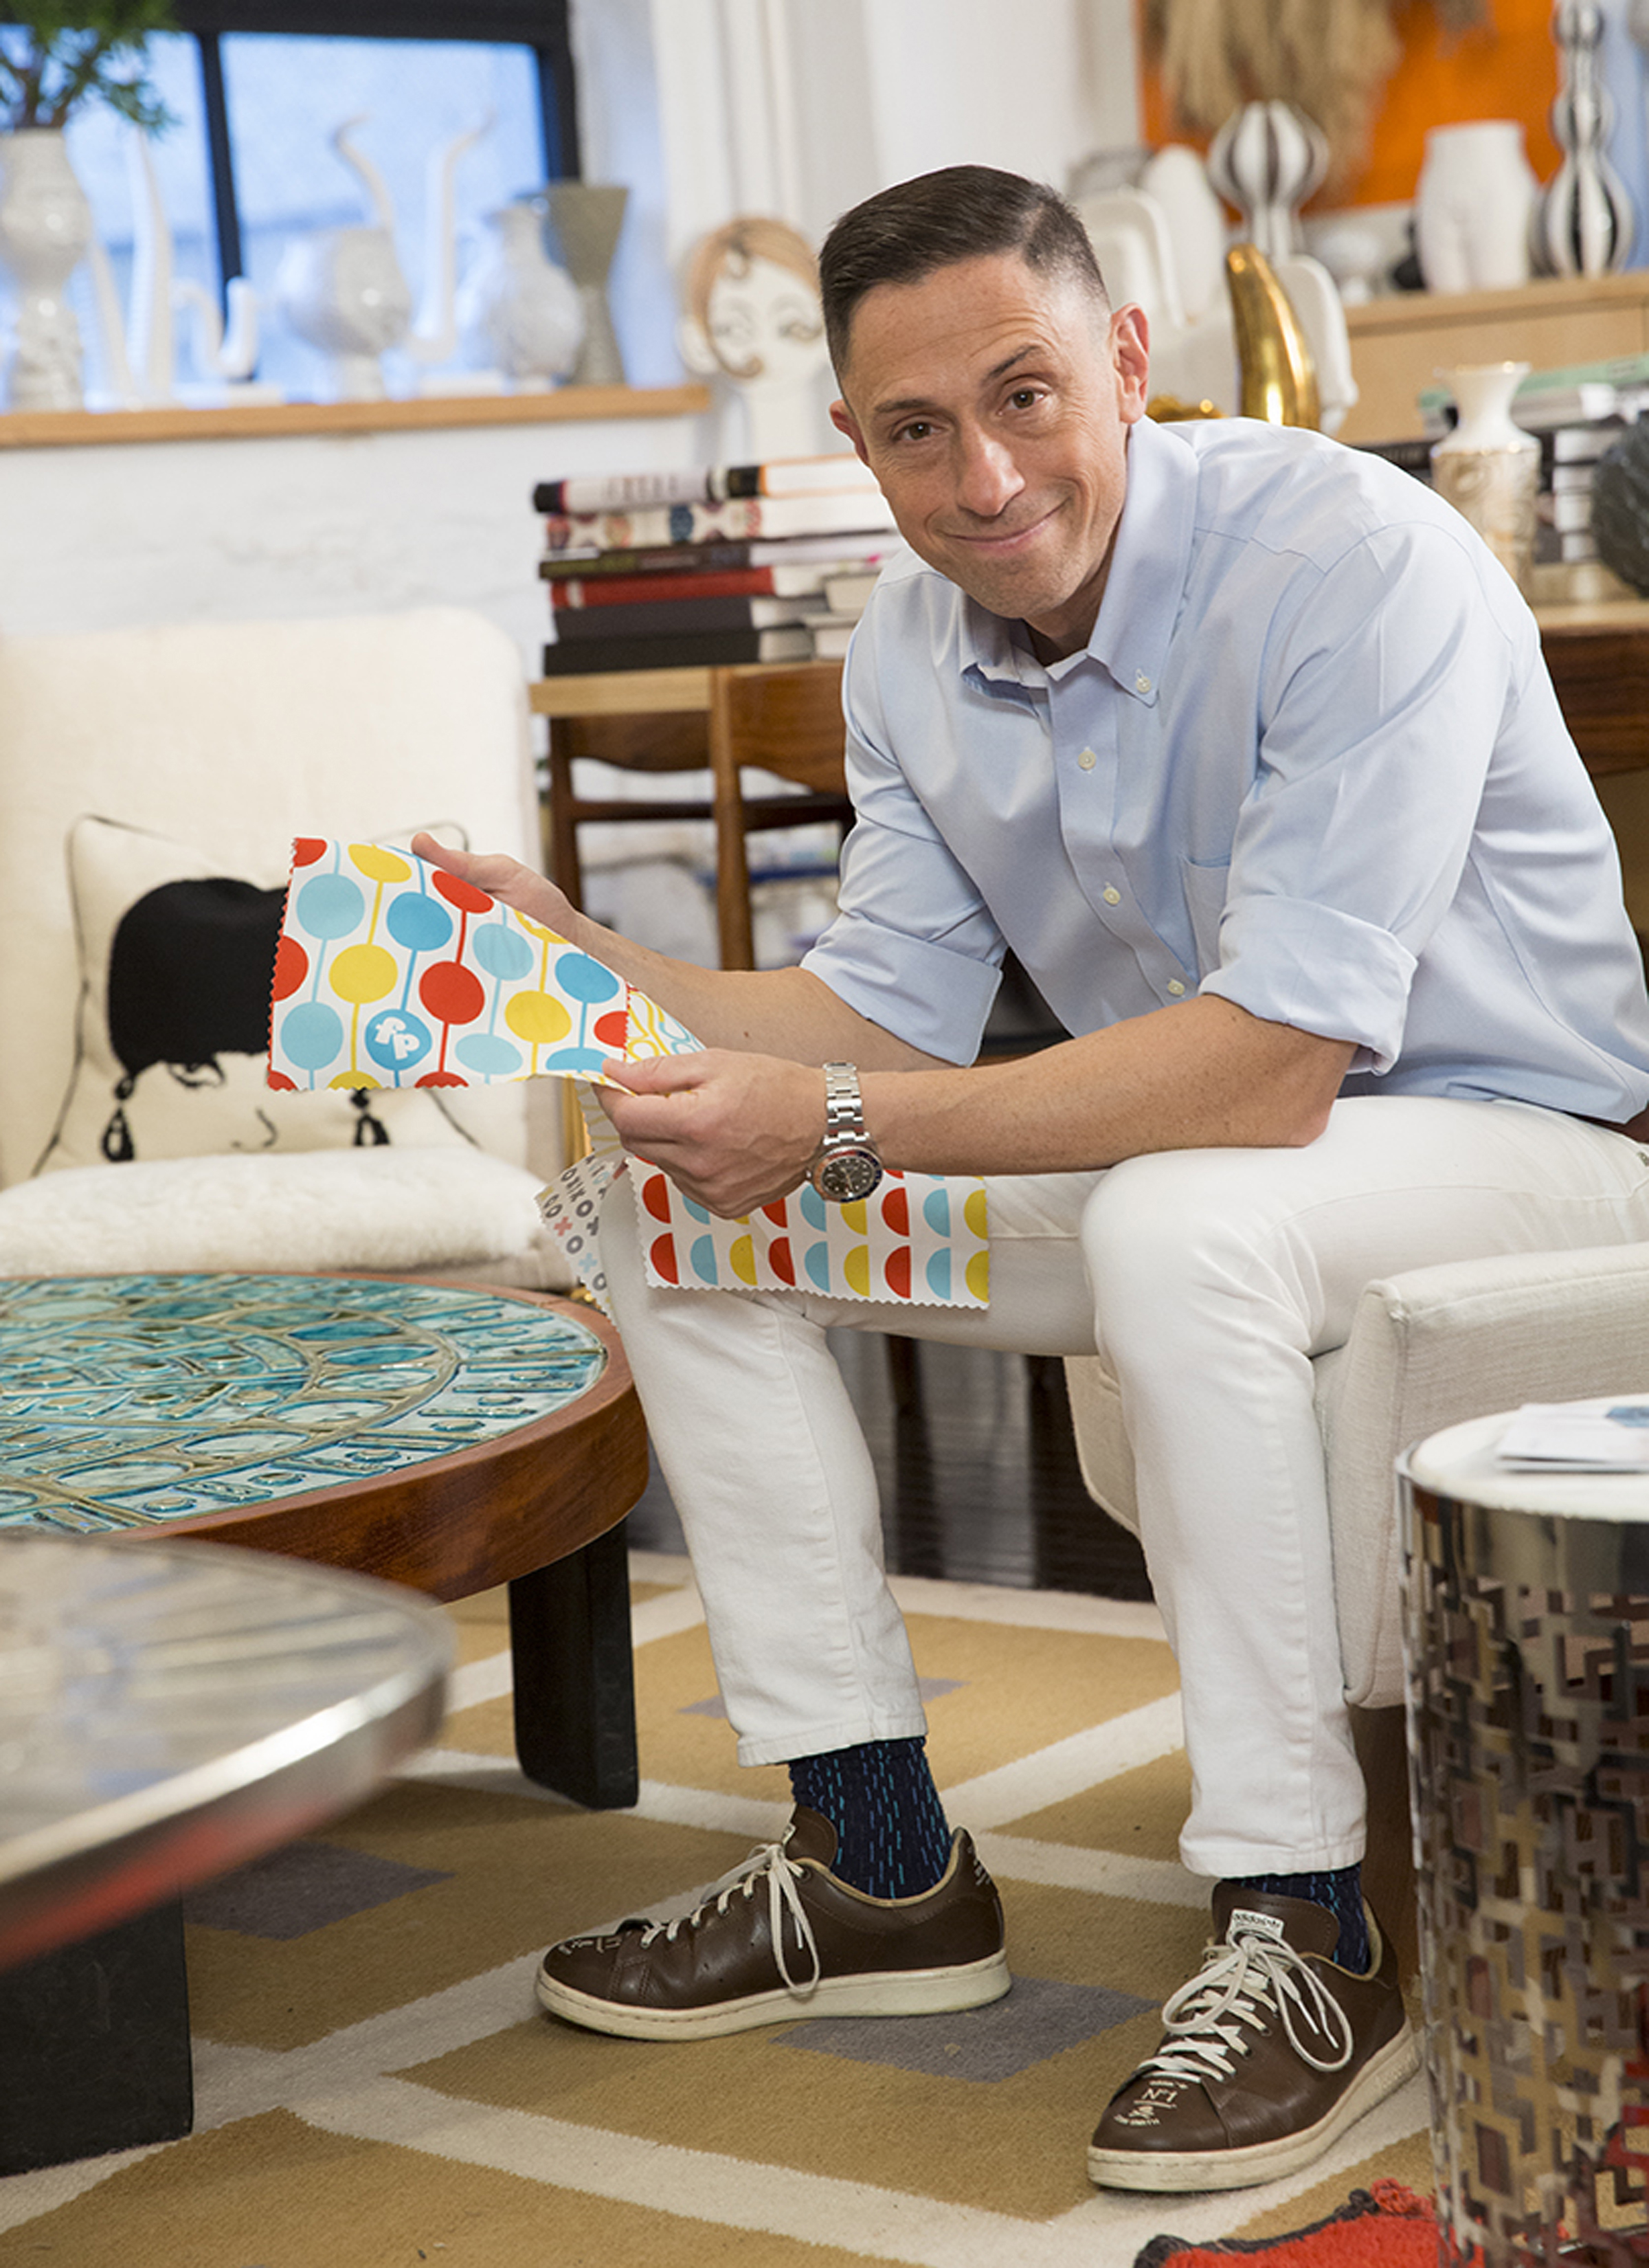 Fisher-Price has appointed potter, designer and author Jonathan Adler as Creative Director.